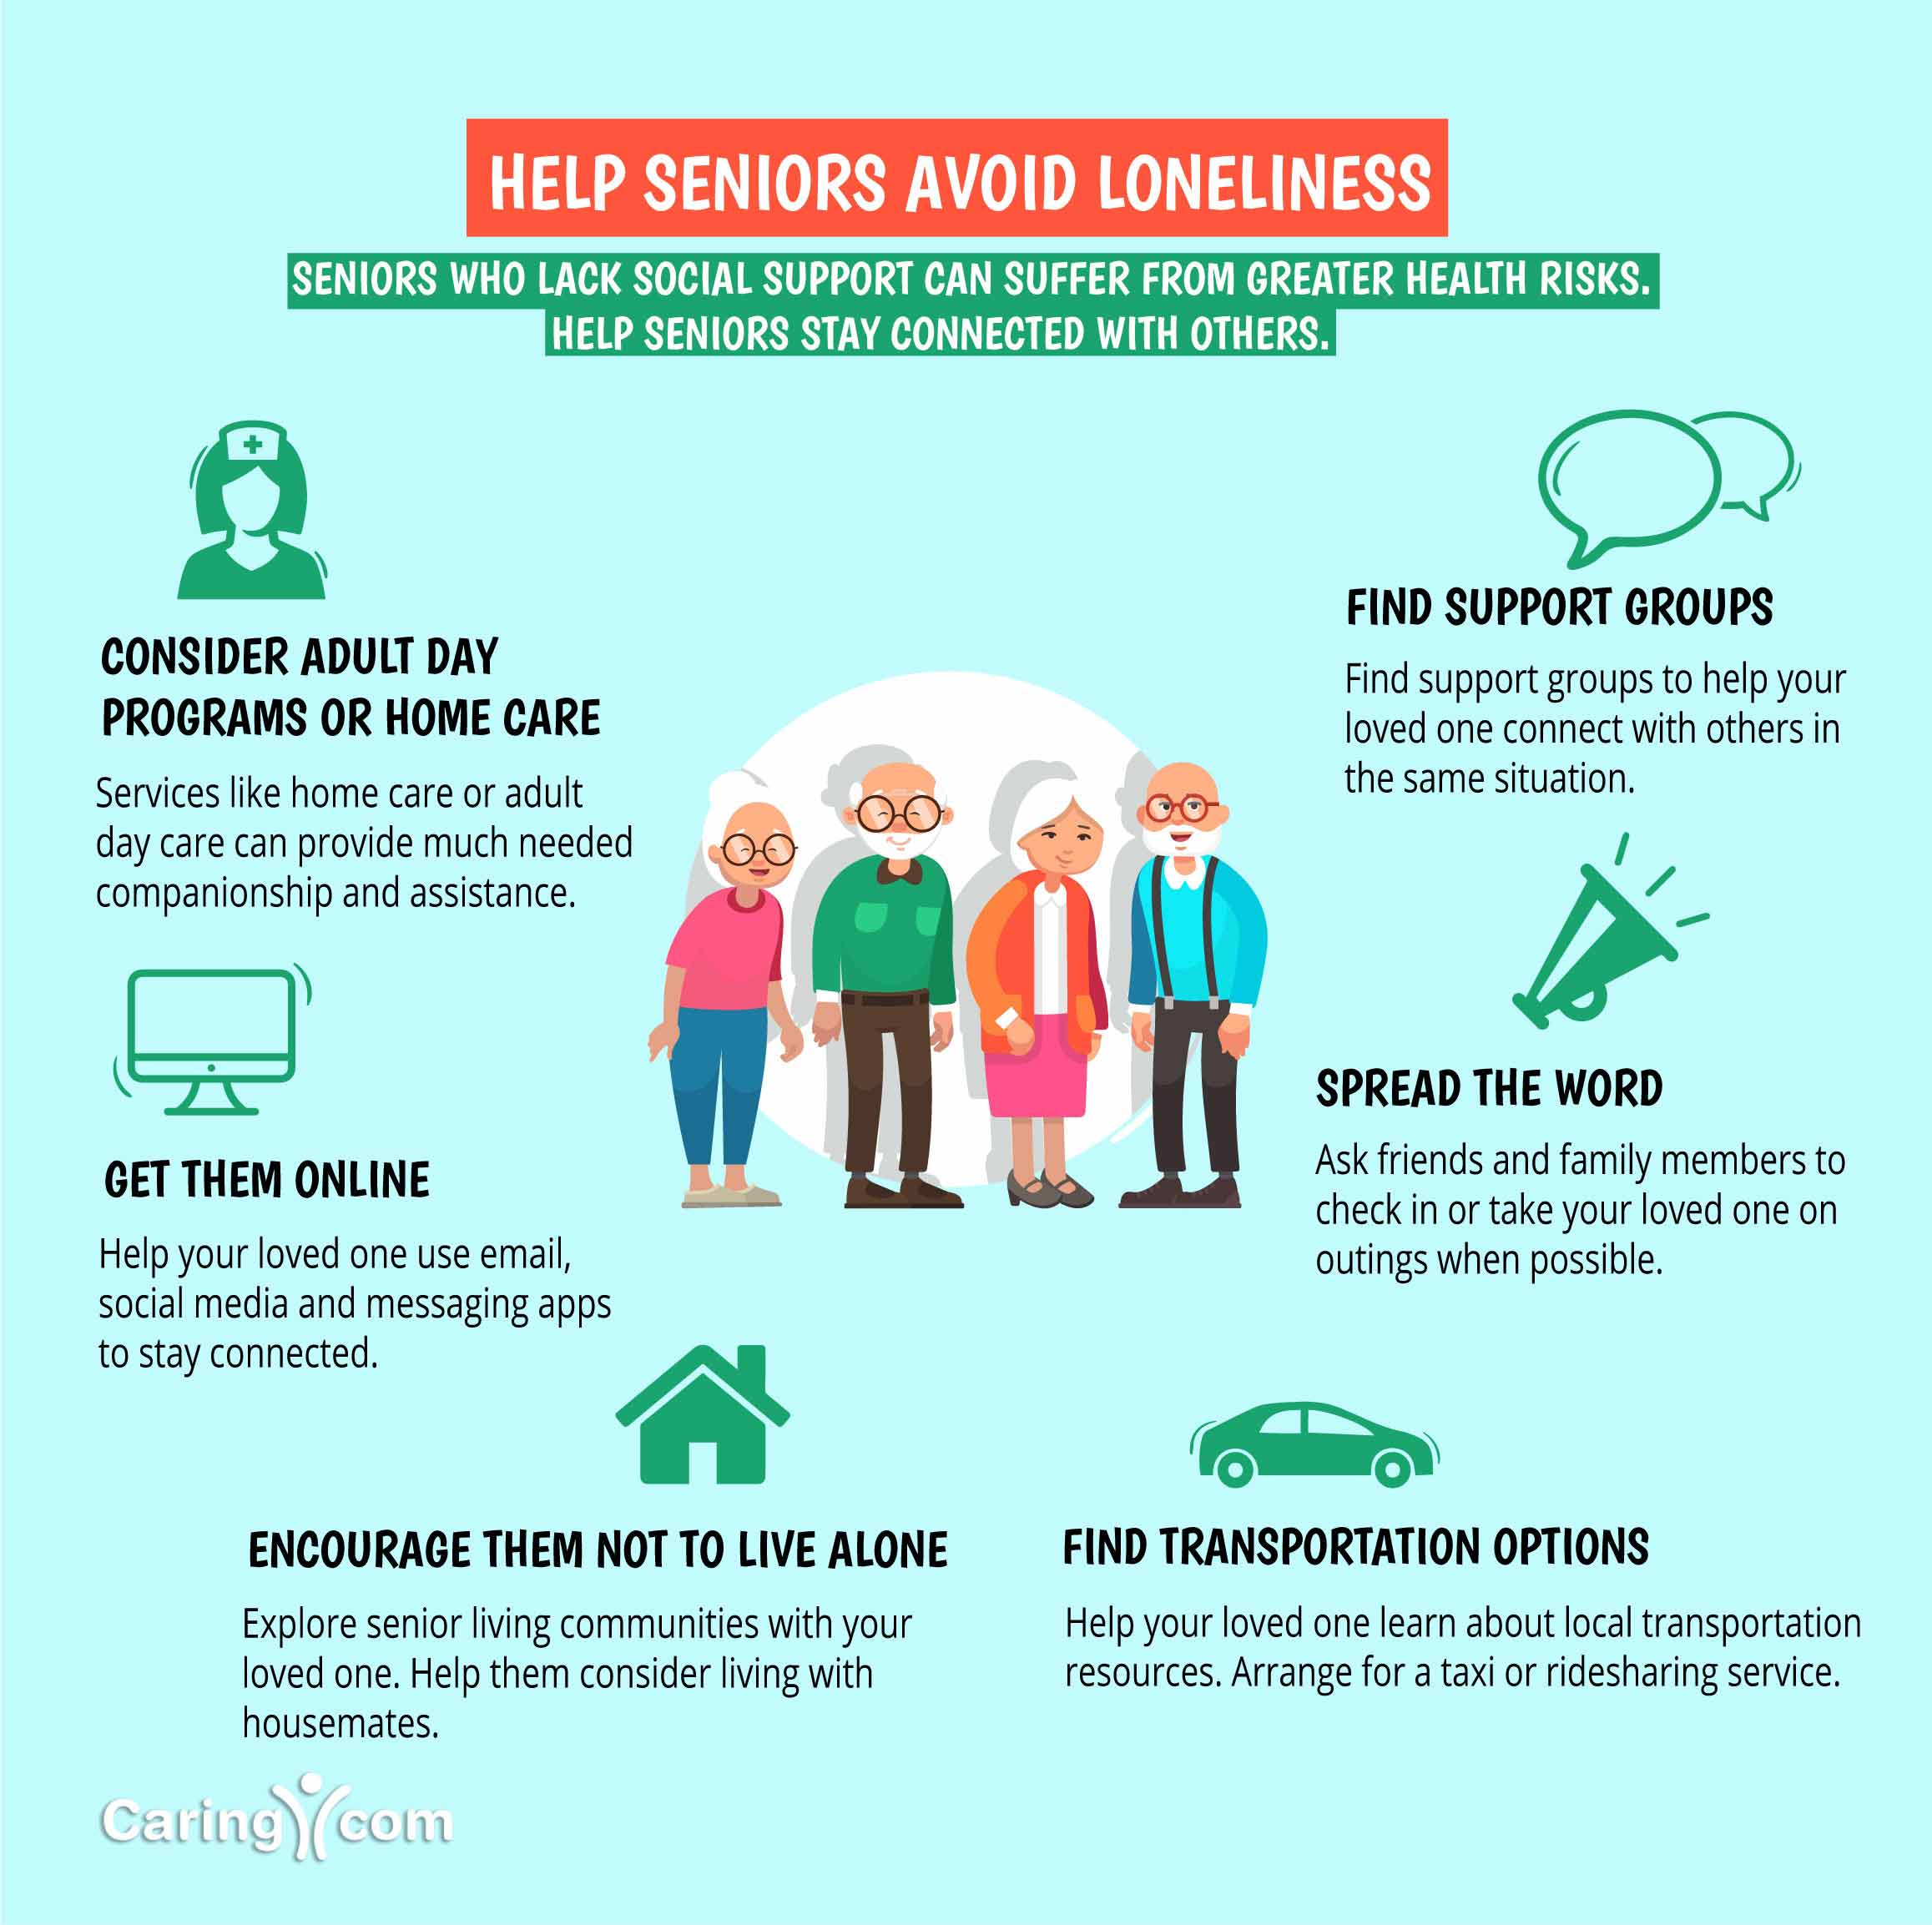 Help seniors avoid loneliness